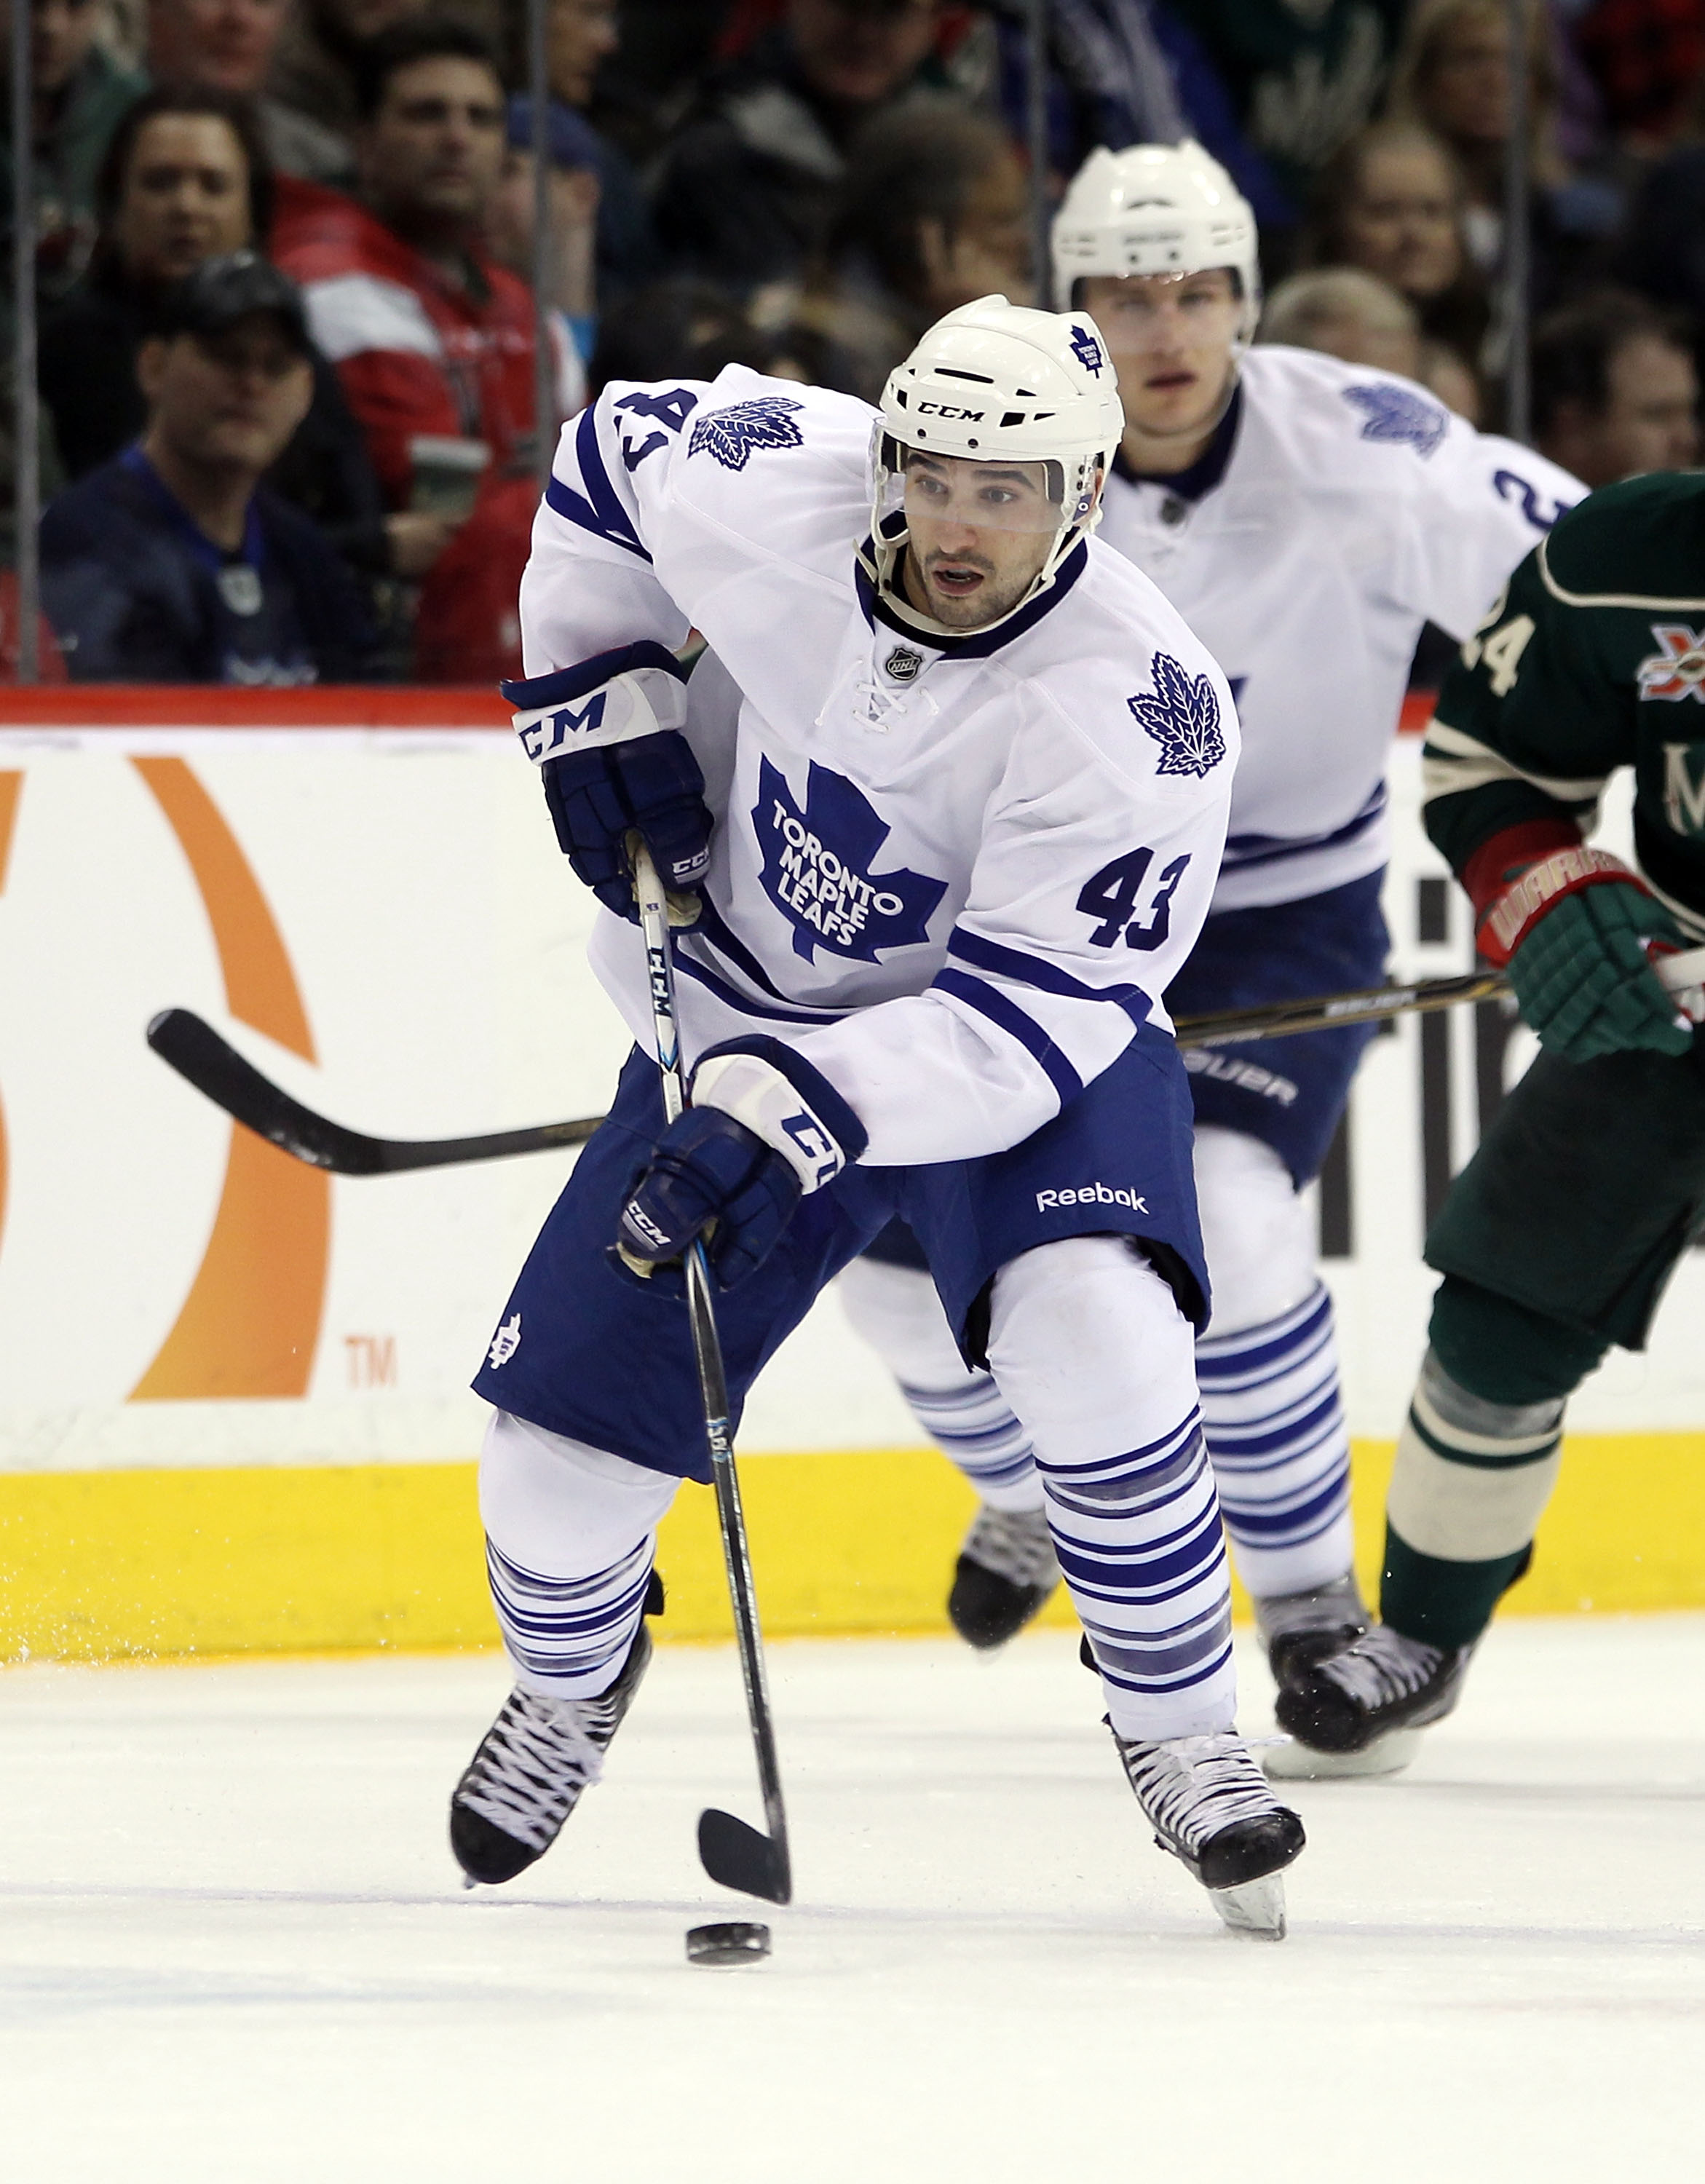 ST PAUL, MN - MARCH 22:  Nazem Kadri #43 of the Toronto Maple Leafs skates against the Toronto Maple Leafs at the Xcel Energy Center on March 22, 2011 in St Paul, Minnesota.  (Photo by Bruce Bennett/Getty Images)